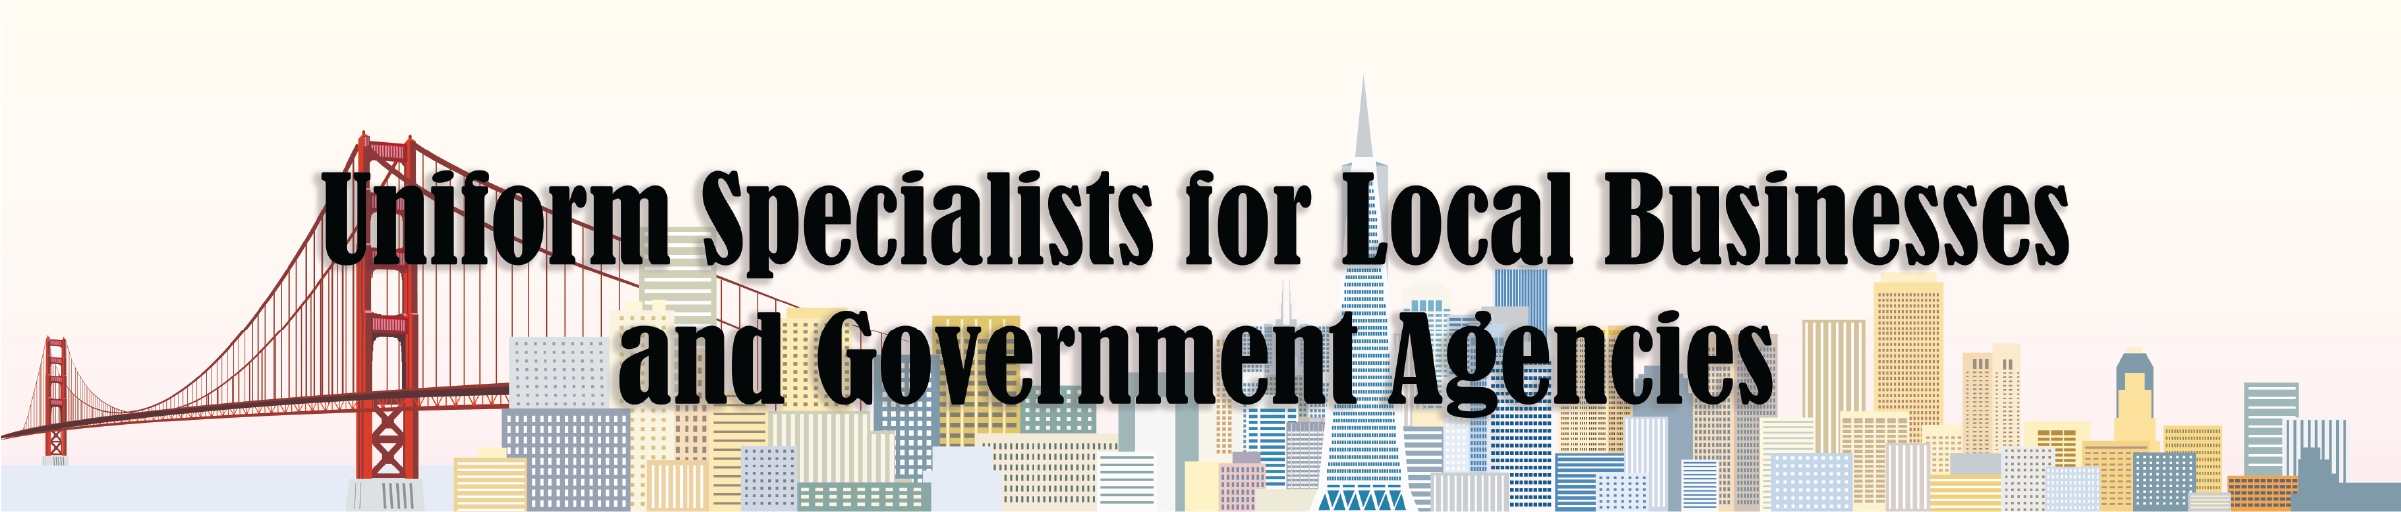 uniform-specialists-local-businesses-government.png